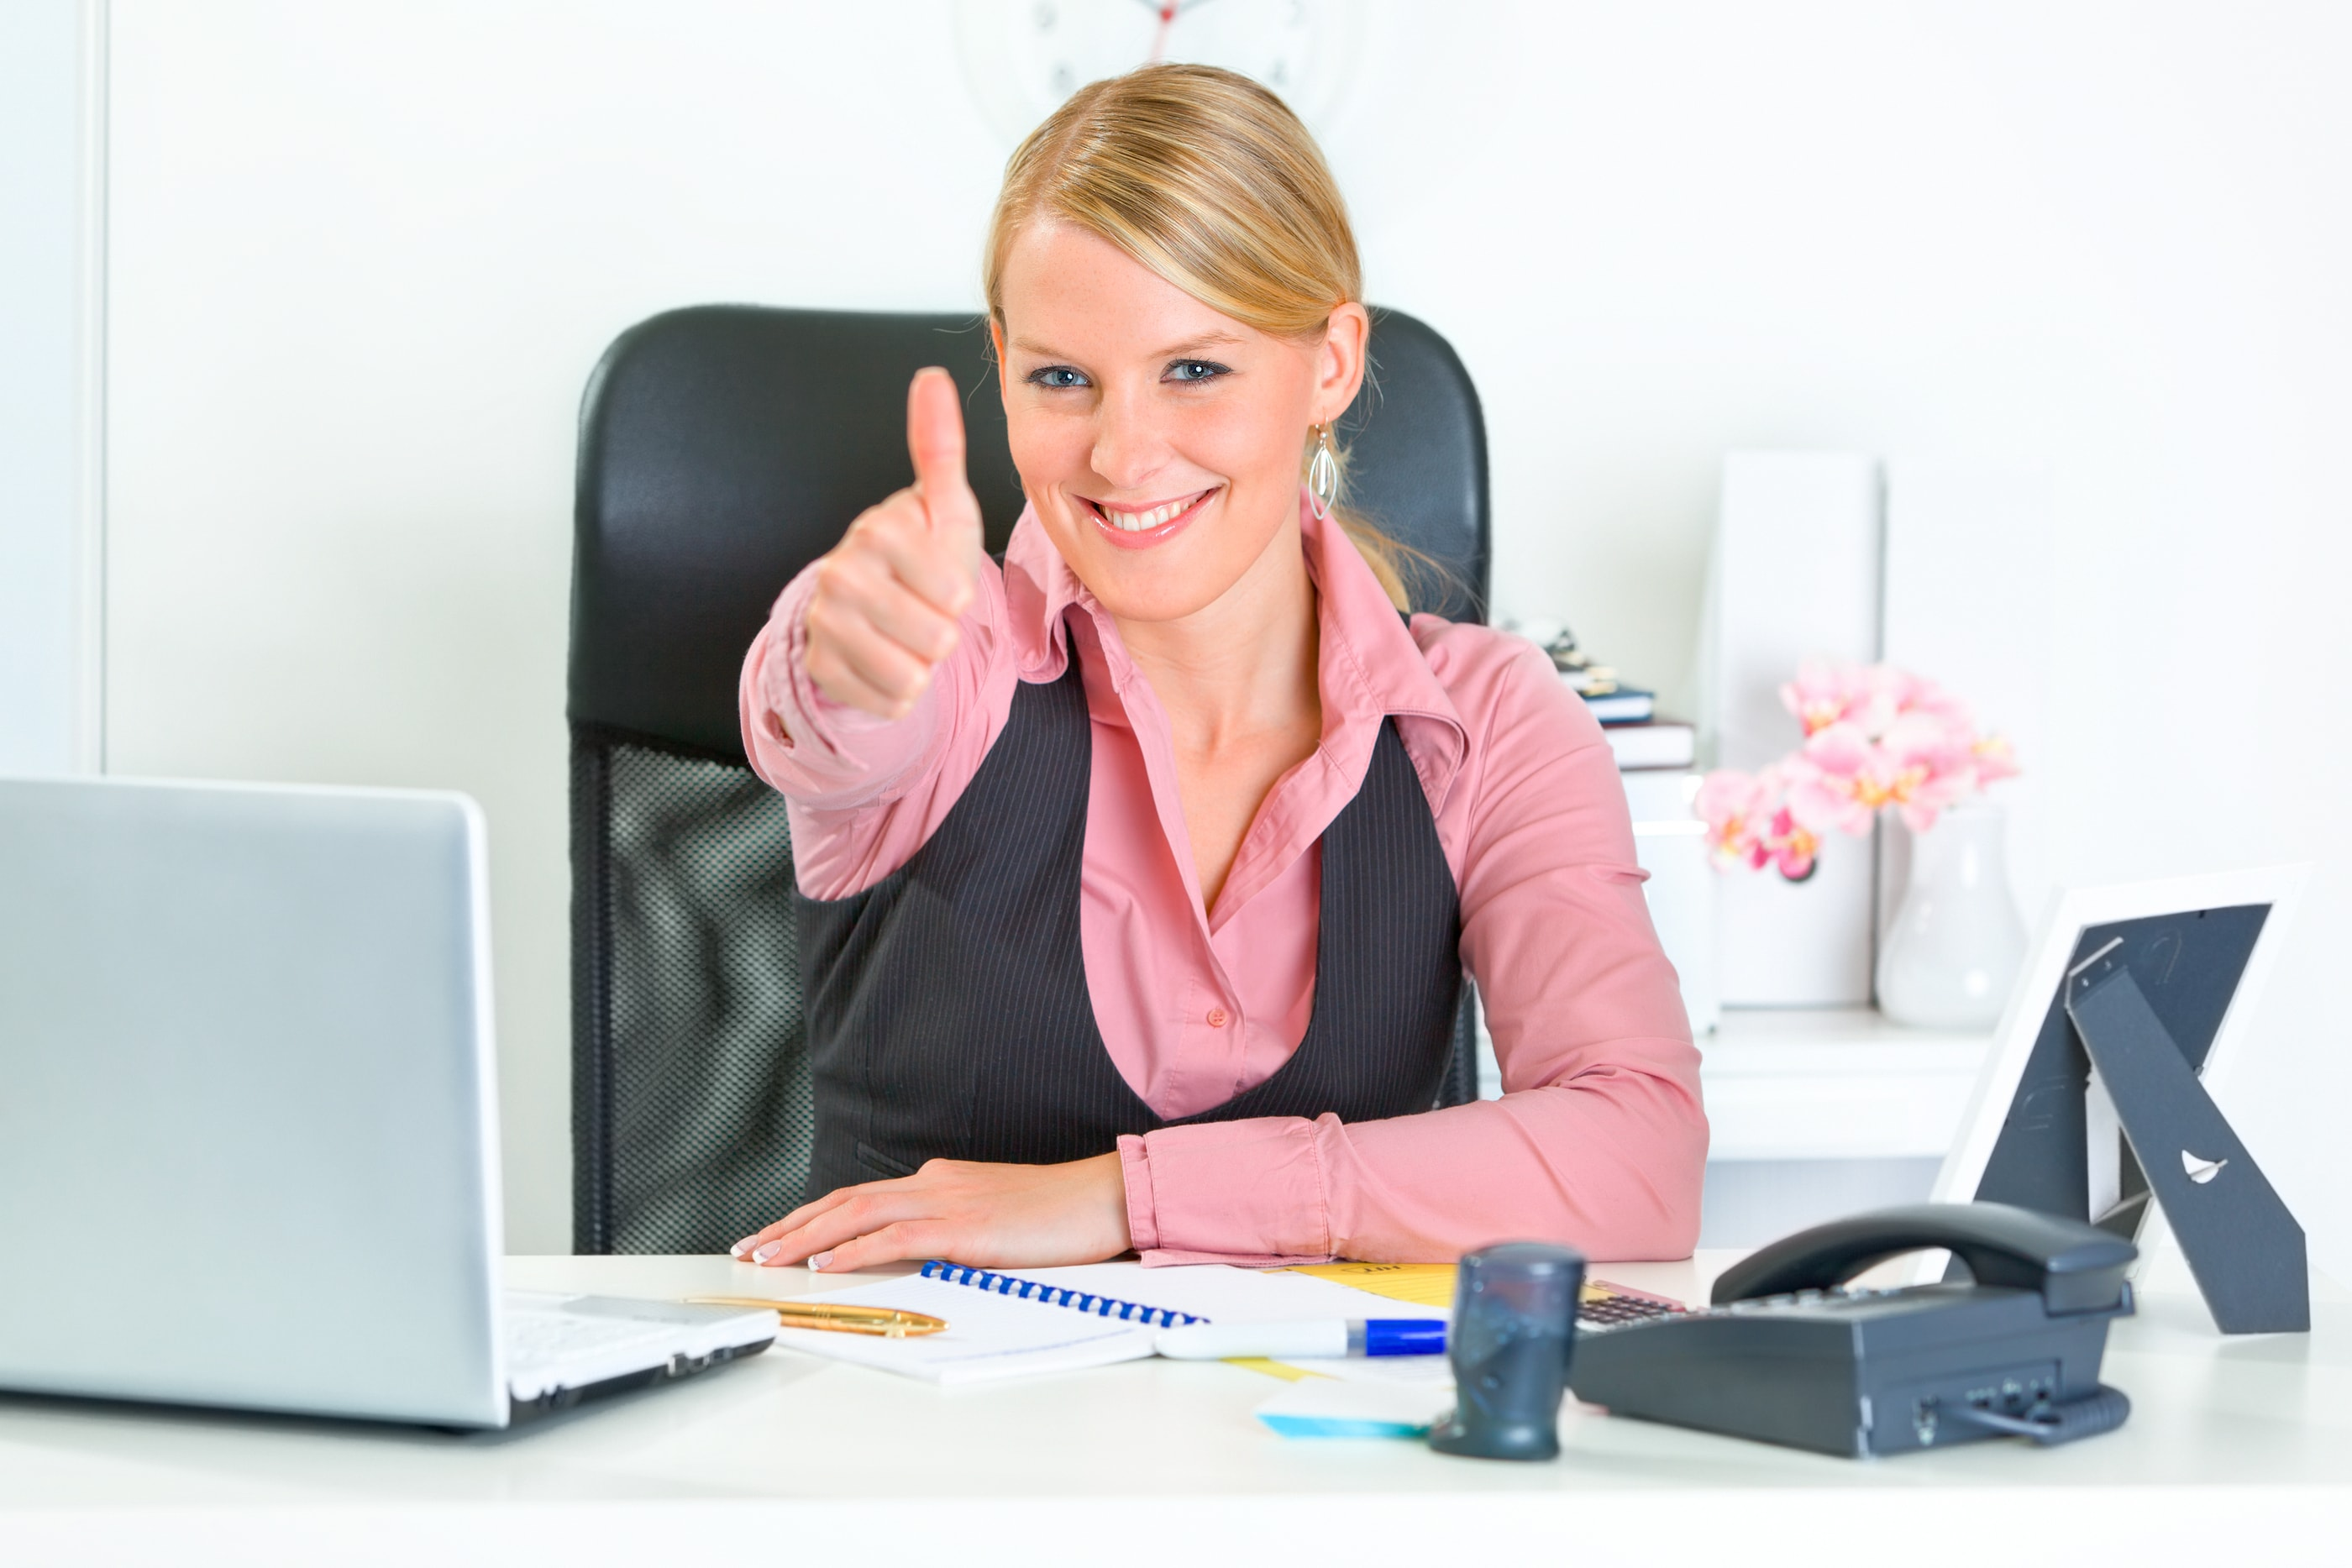 Image of woman at desk giving thumbs up for ADA website compliance